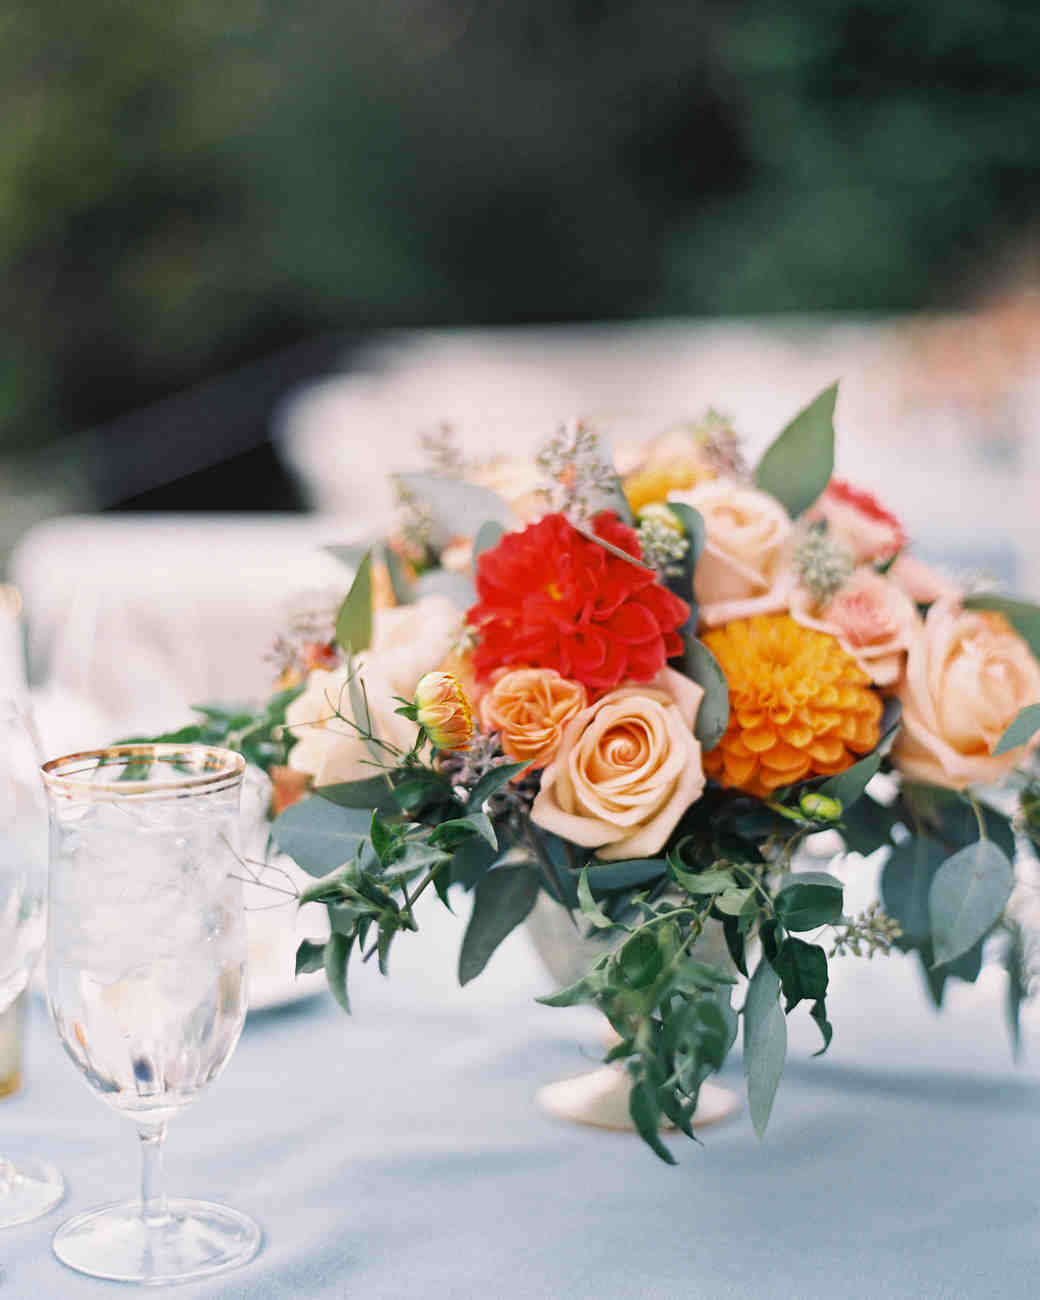 Stunning summer centerpieces using in season flowers